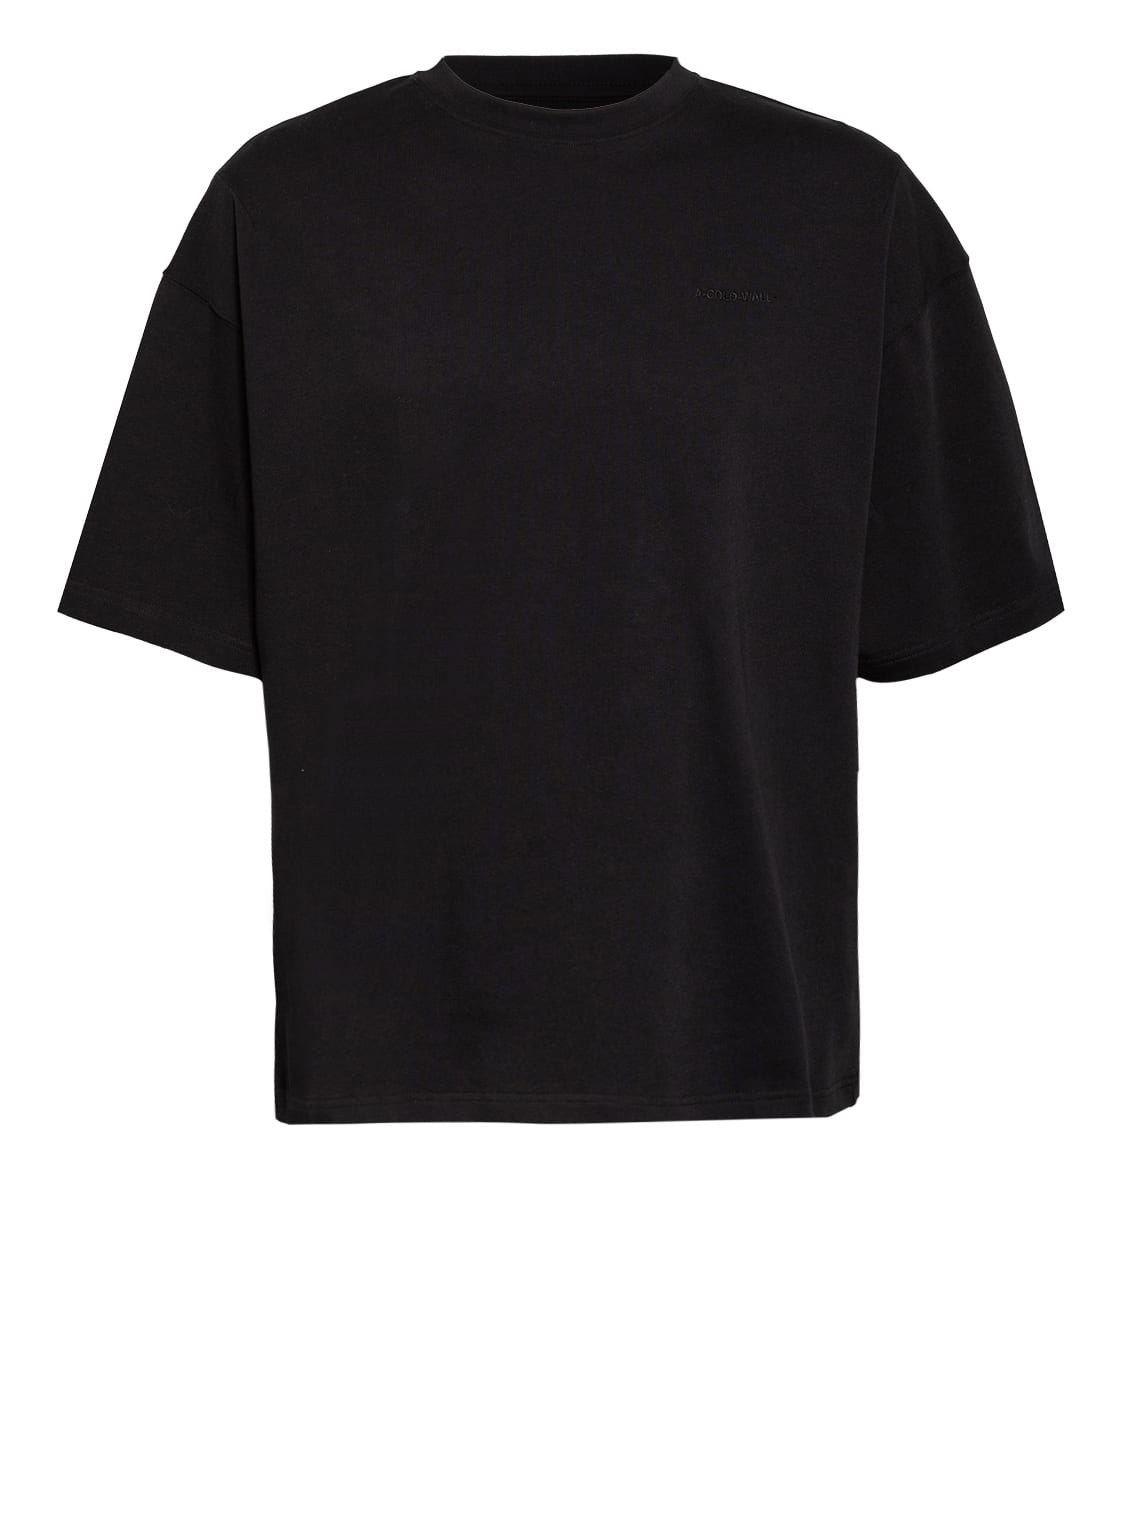 Image of A-Cold-Wall* Oversized-Shirt schwarz